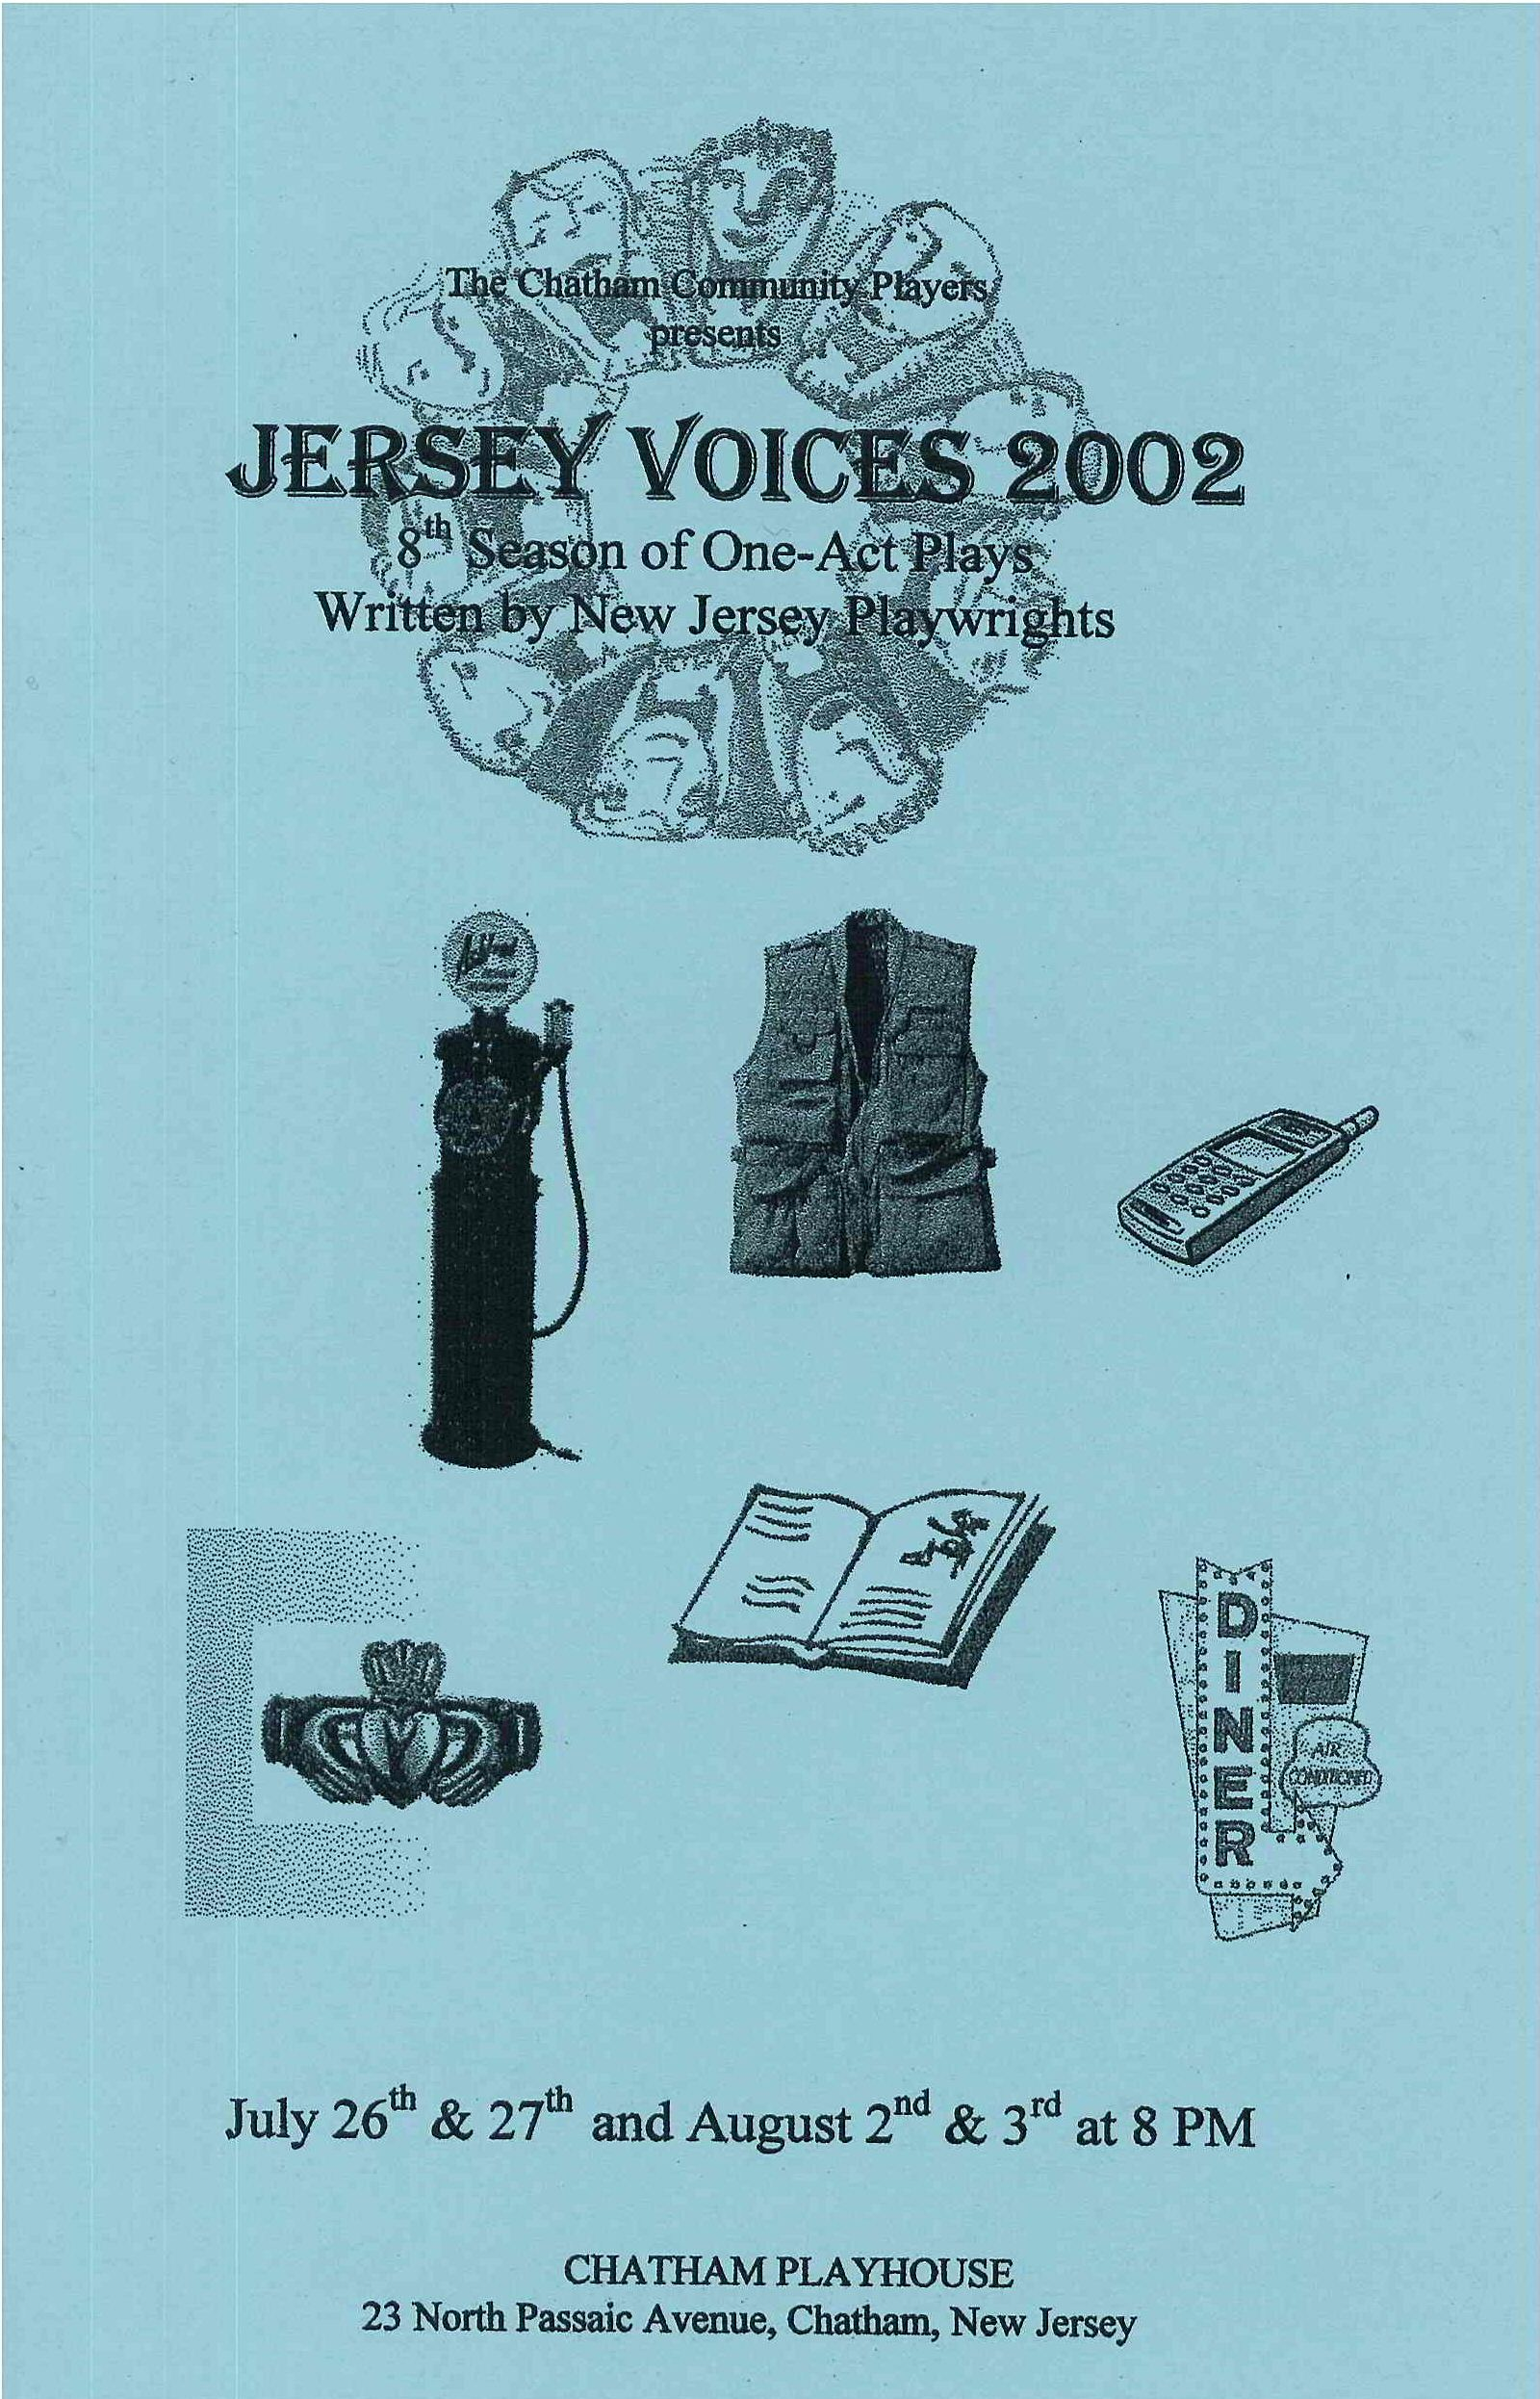 Jersey Voices (2002)